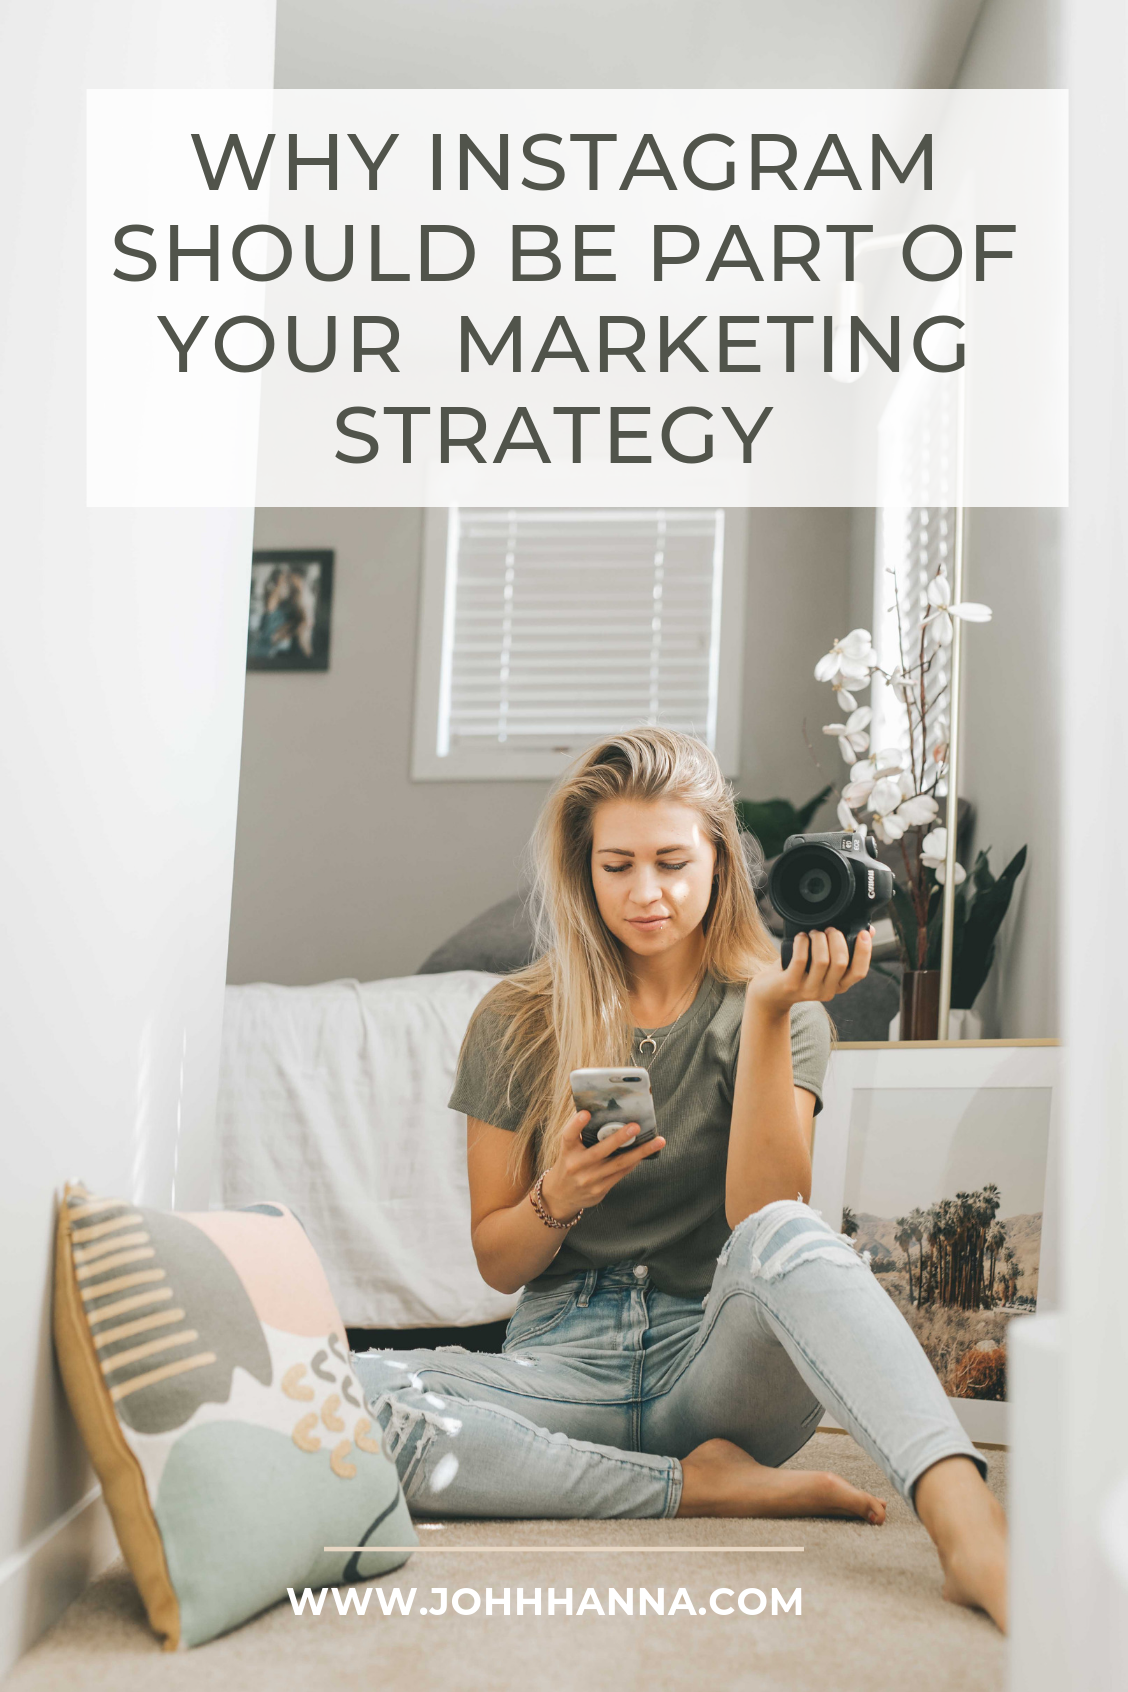 why-instagram-should-be-part-of-your-marketing-strategy.png